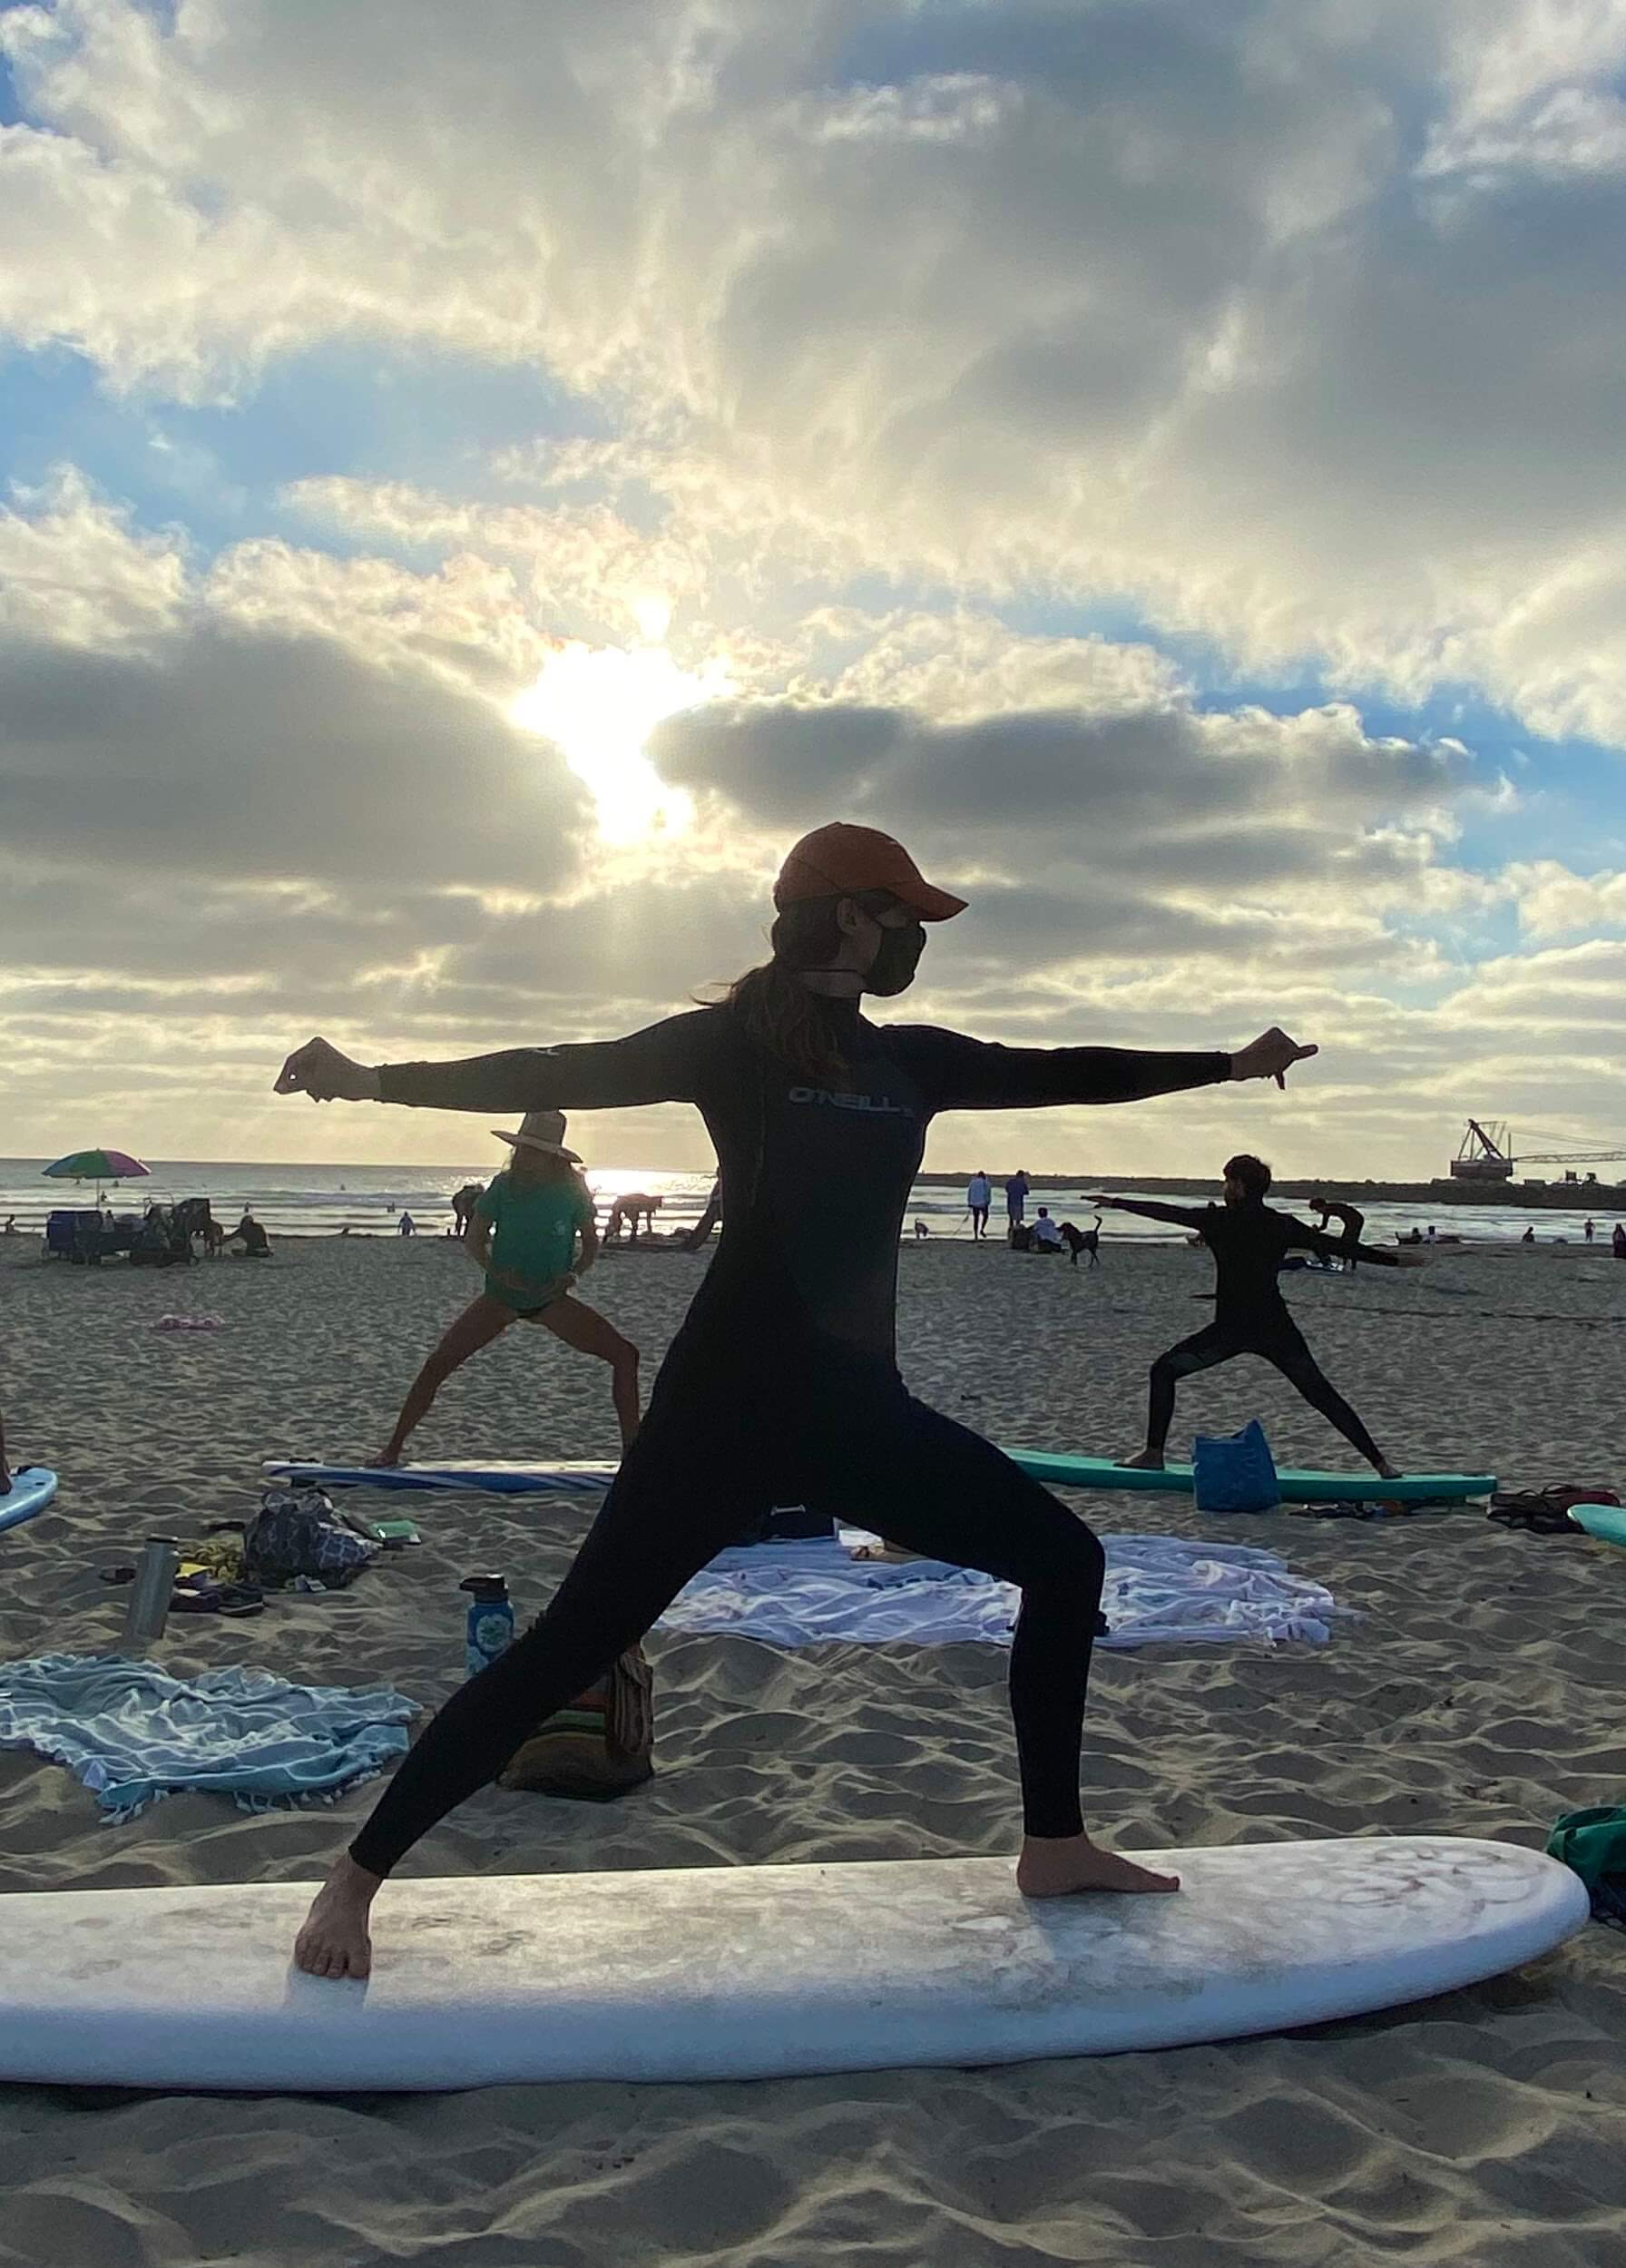 surf therapy participant practices her surf stance on her board on the beach at sunset